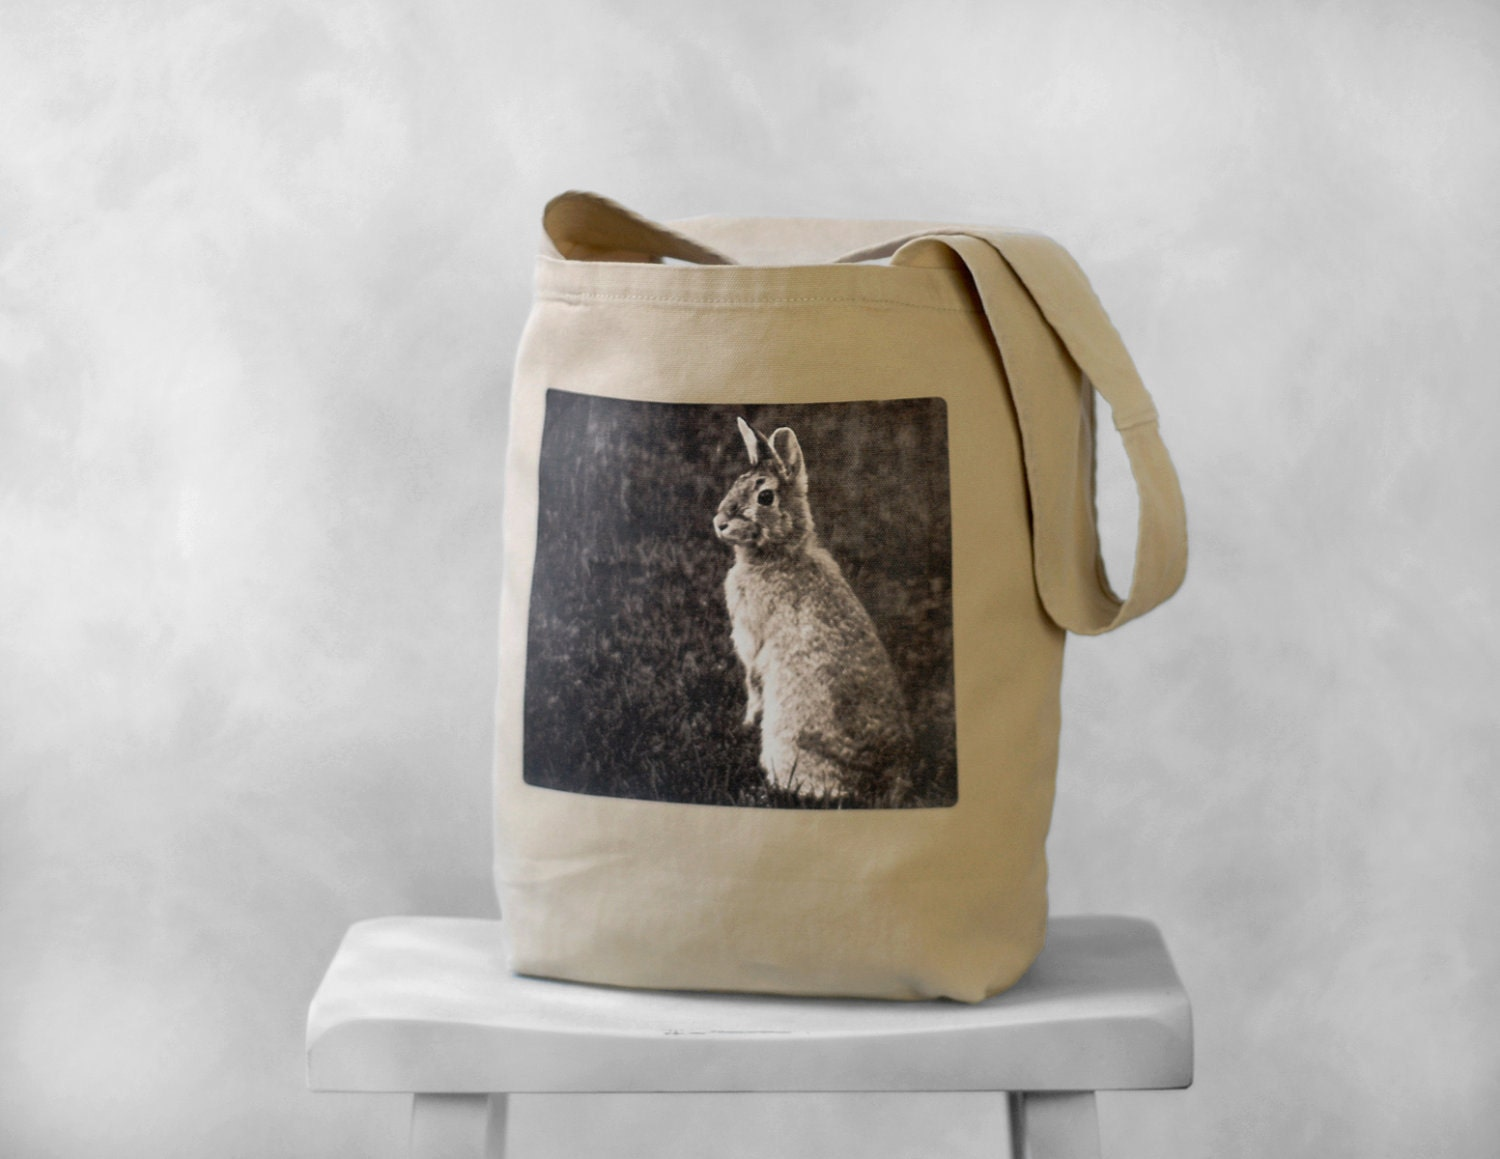 Purse Tote Canvas Bag - Woodland Bunny - Mademoiselle Lapina - Stone Beige